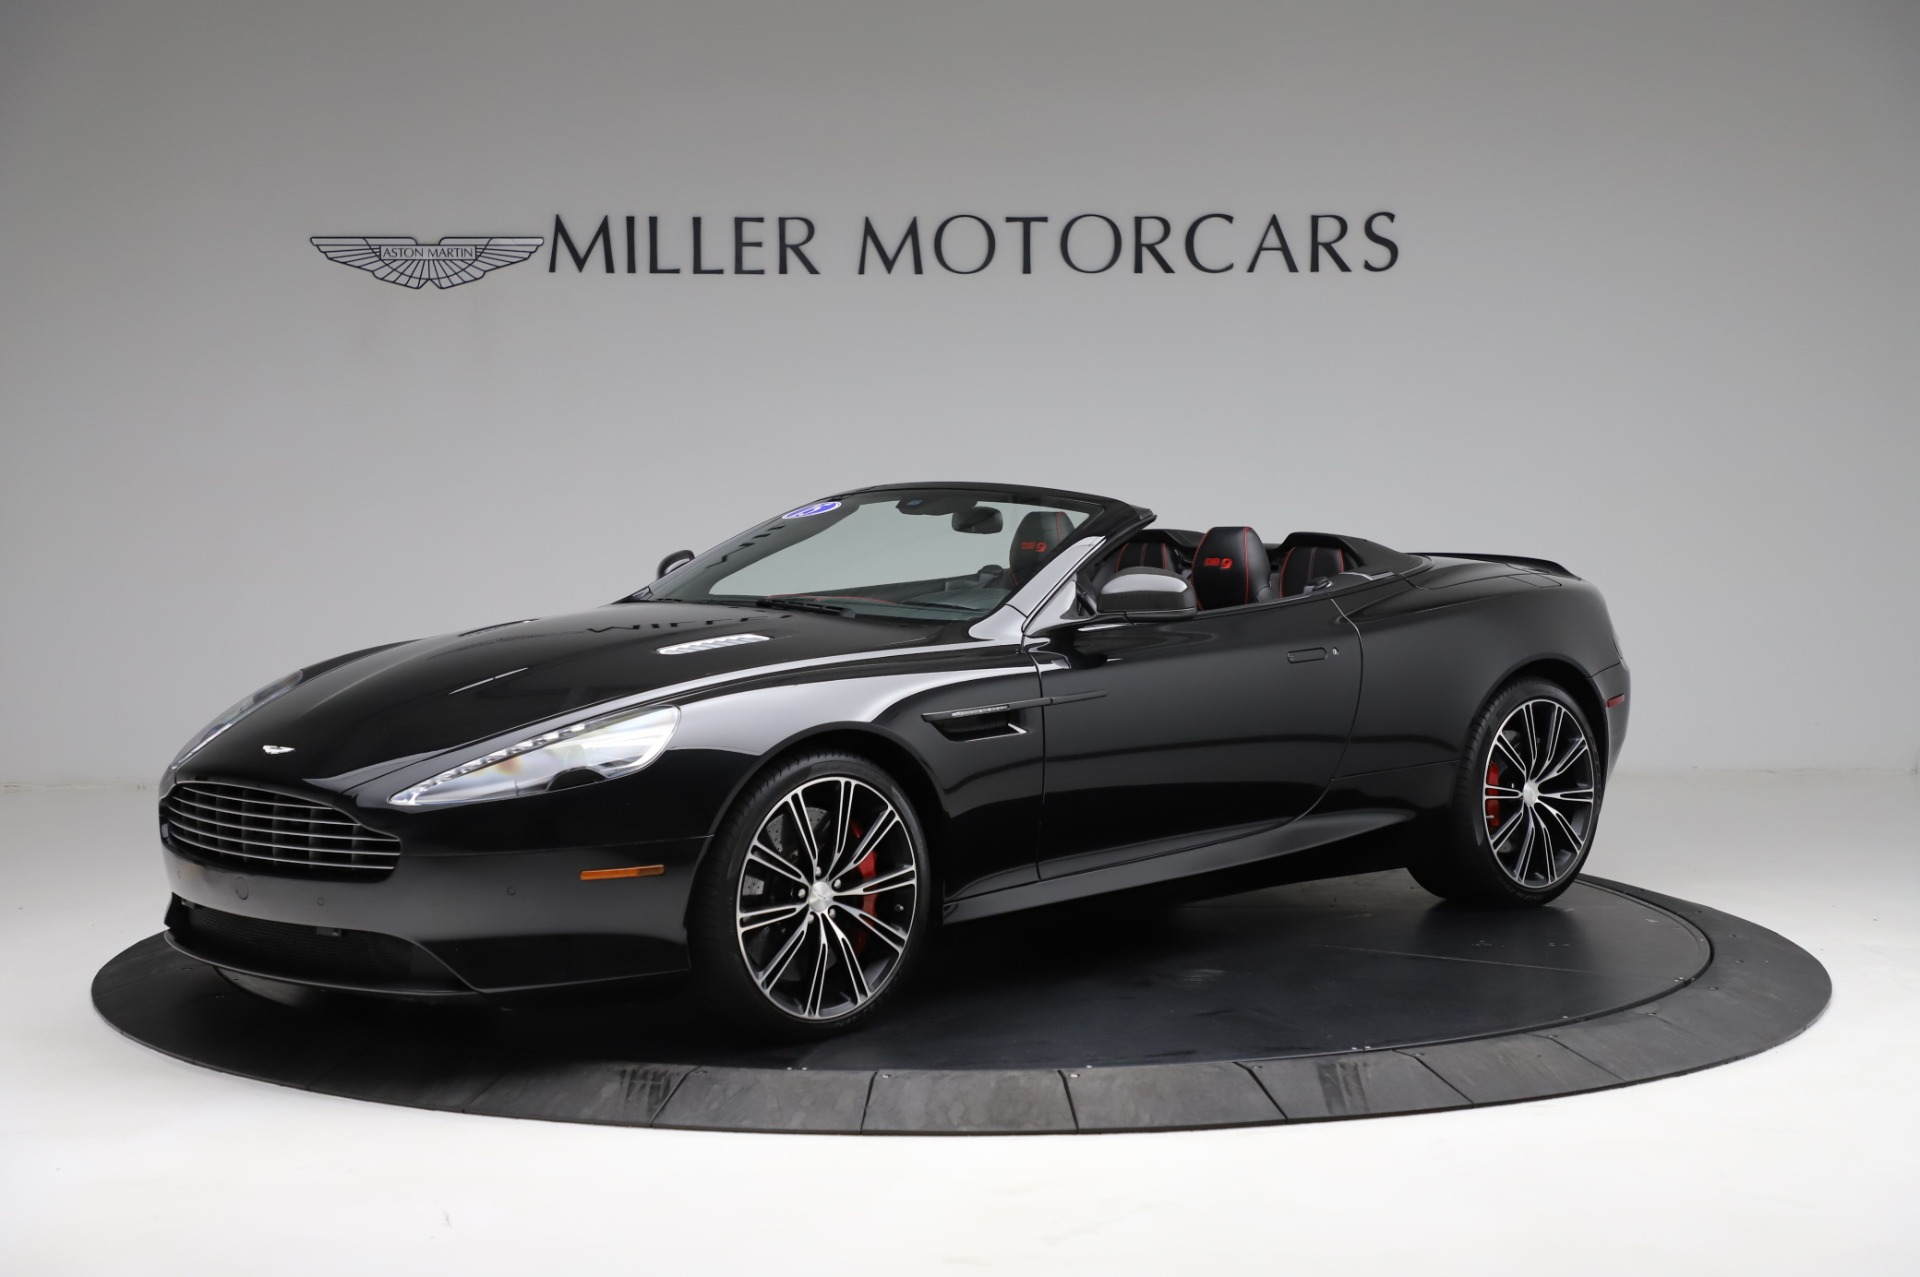 Used 2015 Aston Martin DB9 Convertible for sale Sold at Aston Martin of Greenwich in Greenwich CT 06830 1